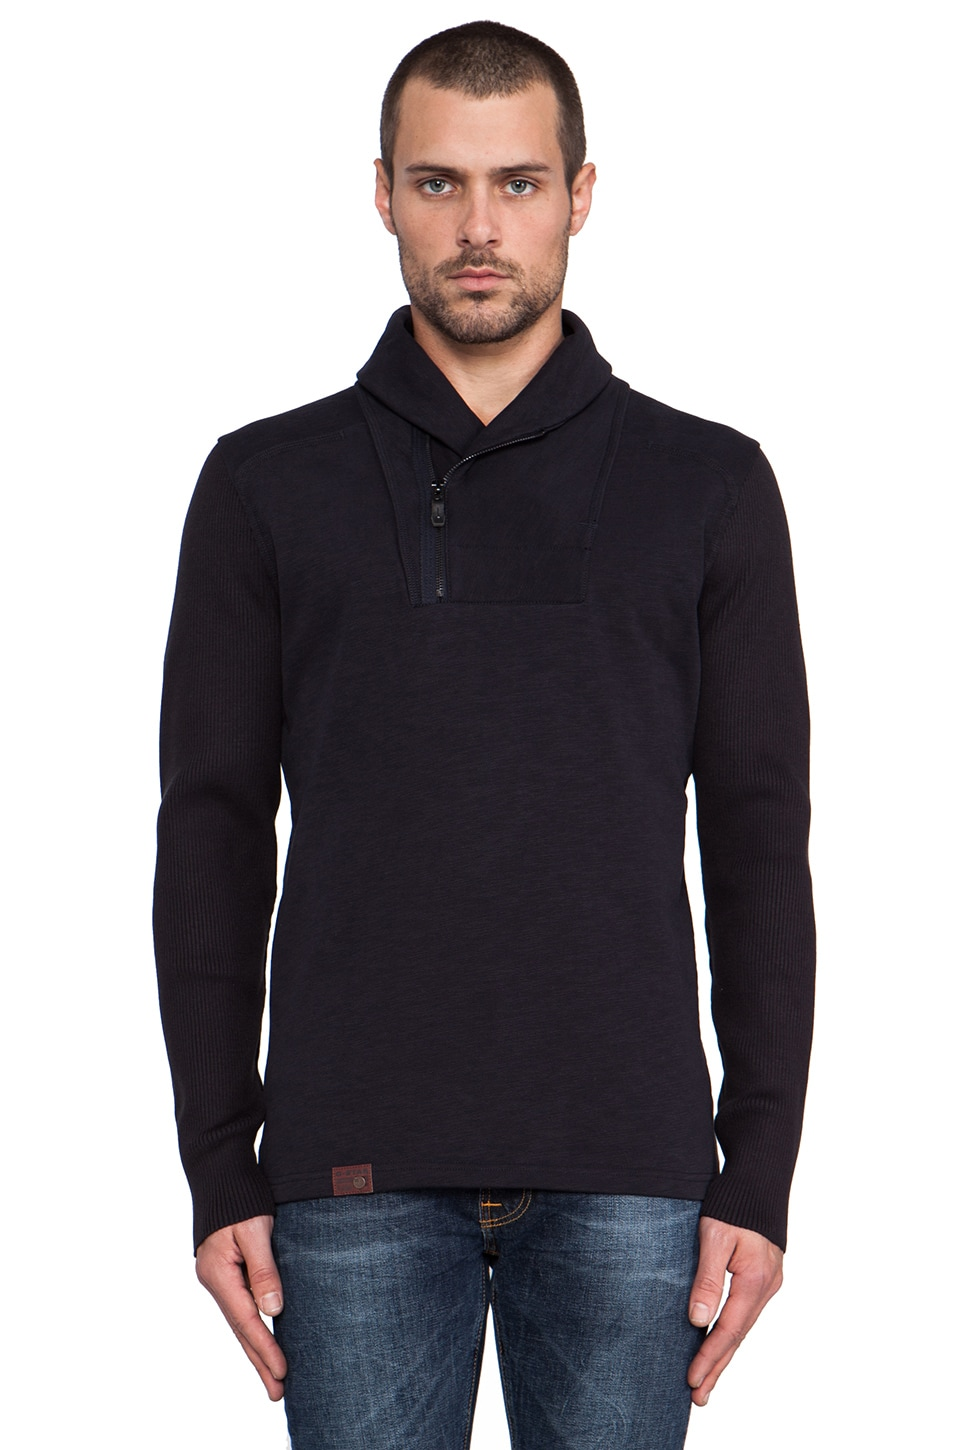 G-Star Syris Collar Sweatshirt in Mazarine Blue